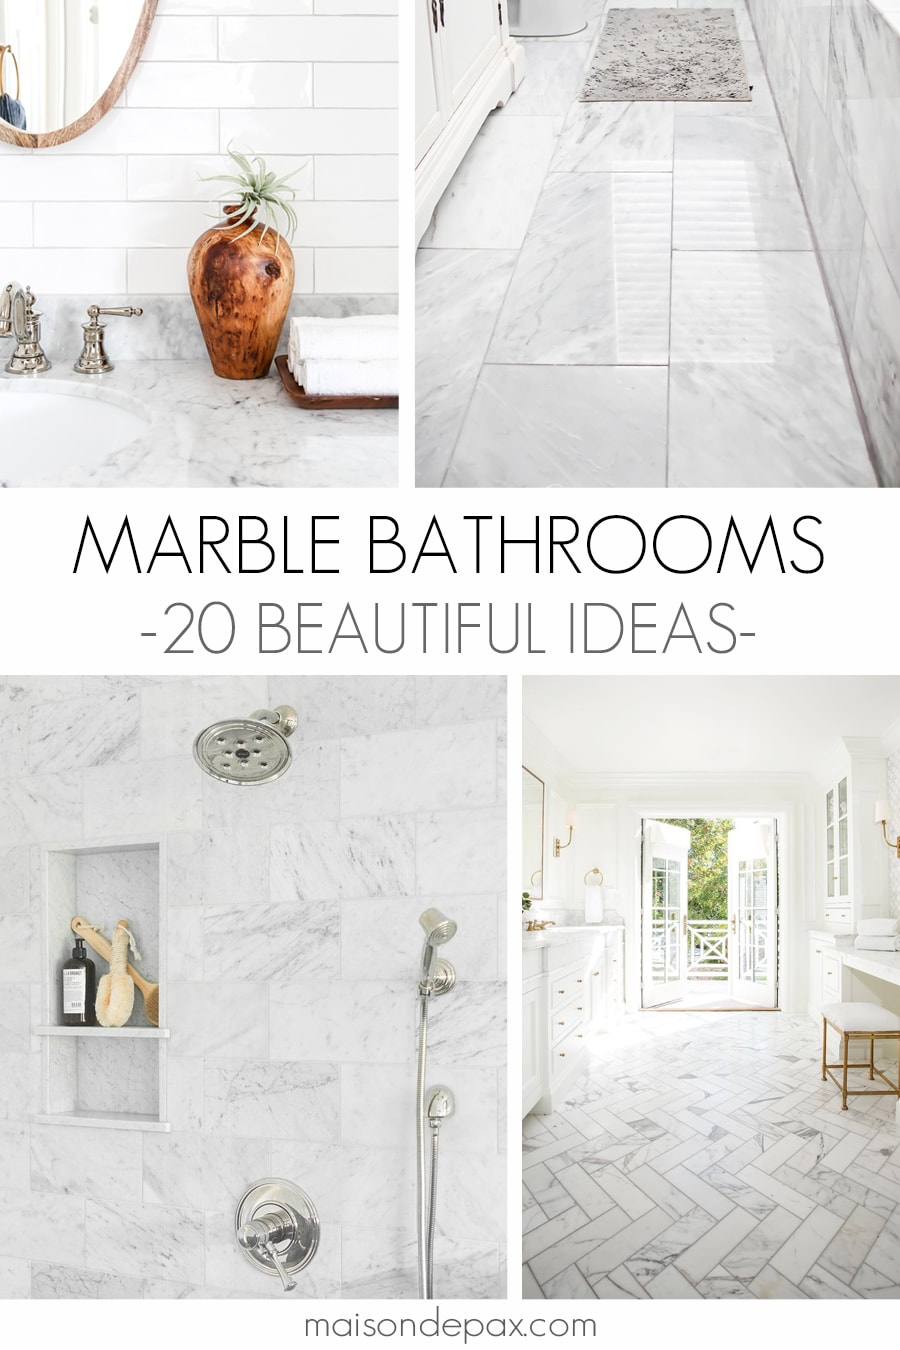 four images with marble countertops and tile in bathrooms